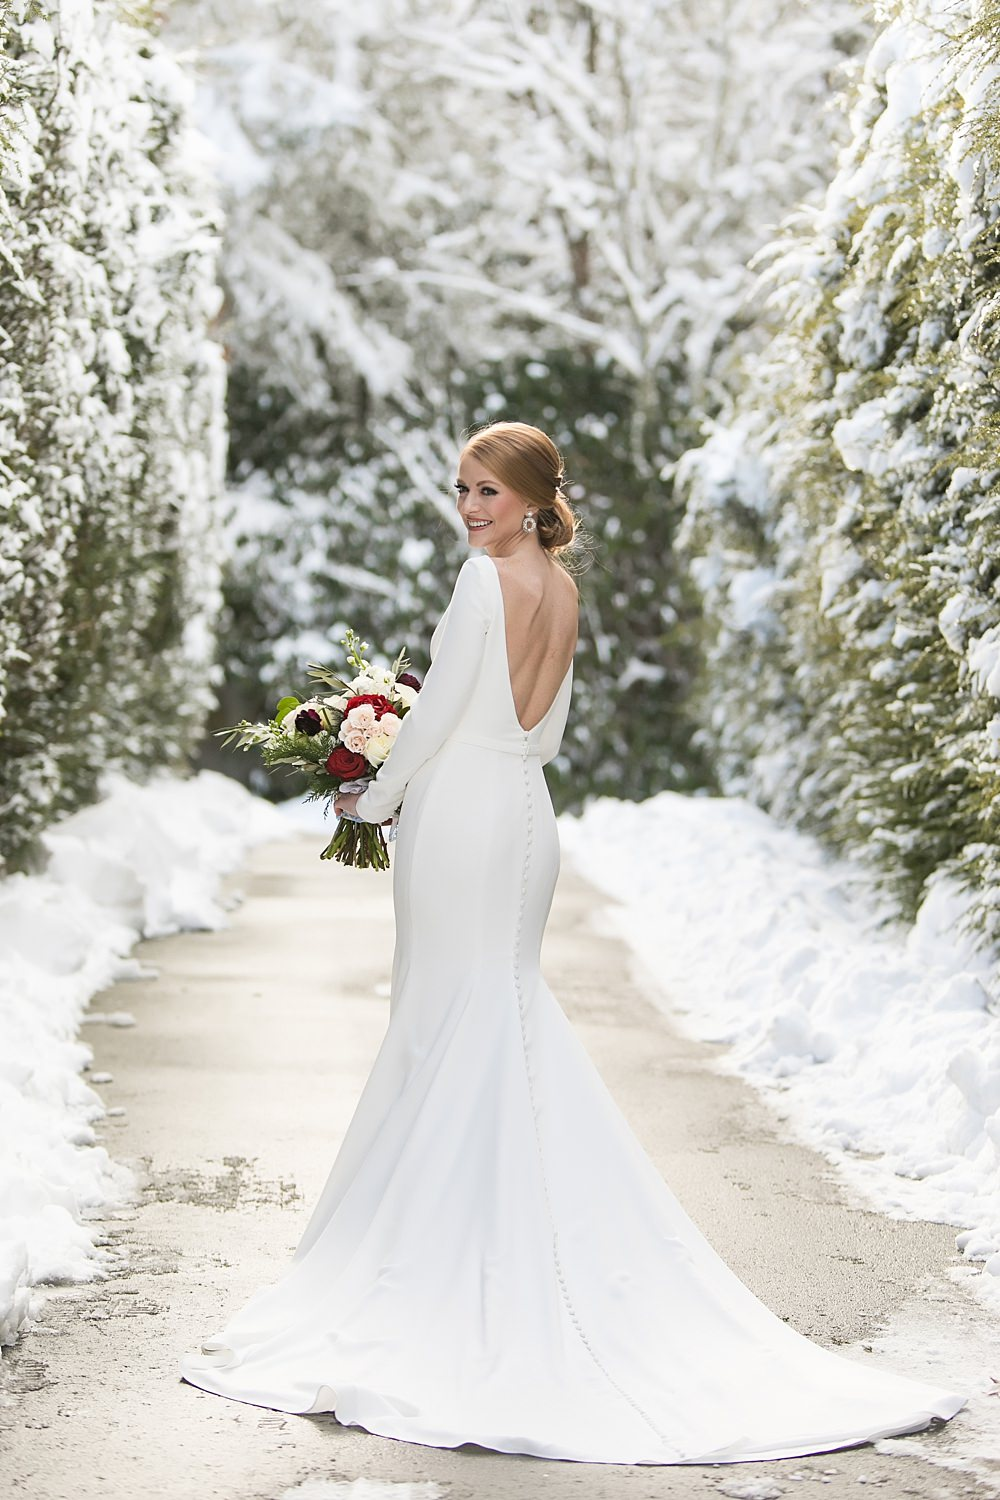 snowy wedding : highlands north carolina : the farm at old edwards : floressense flowers : vue photography (20)